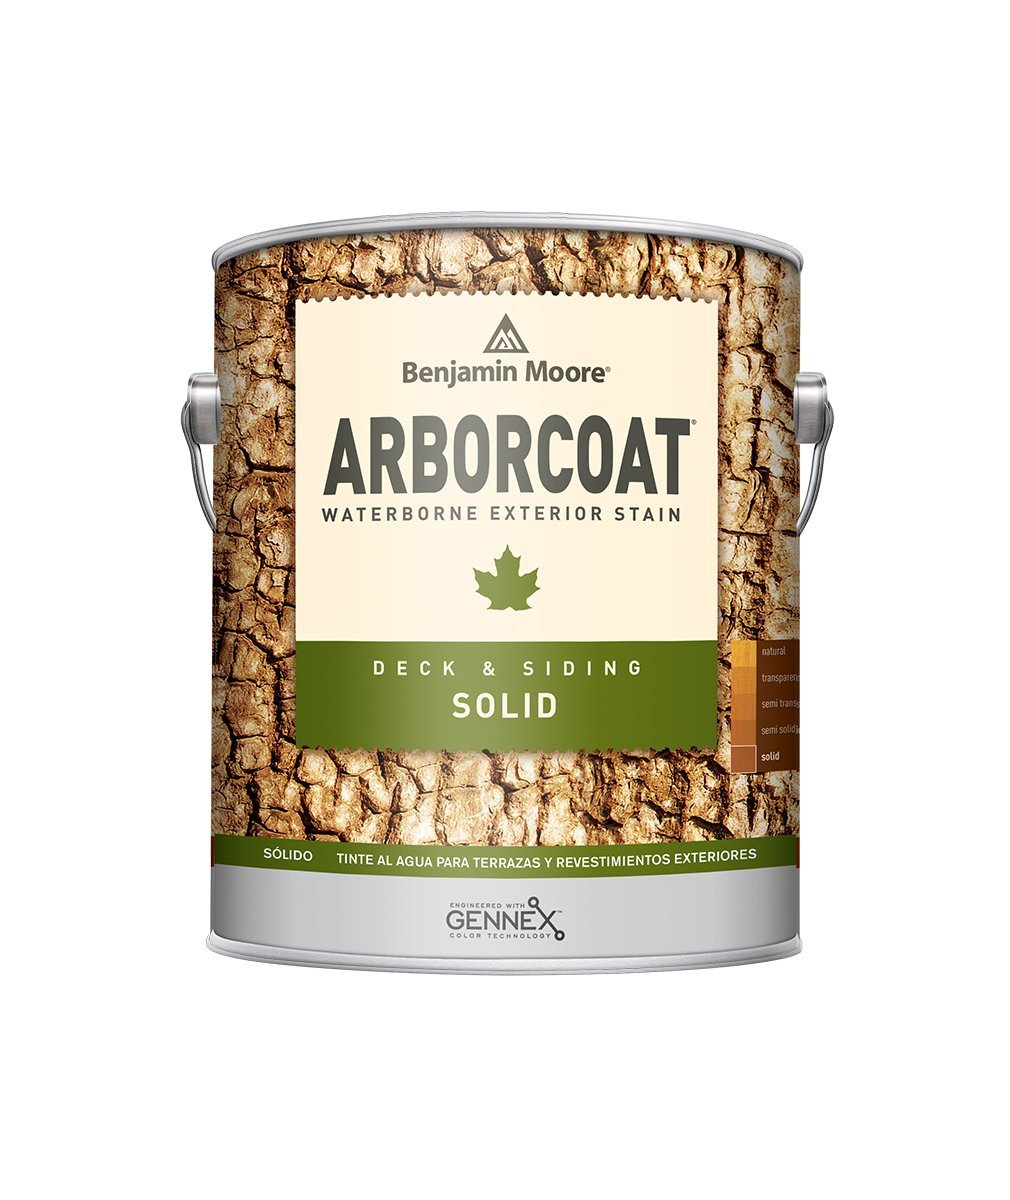 Arborcoat Solid, available at Catalina Paints in CA.